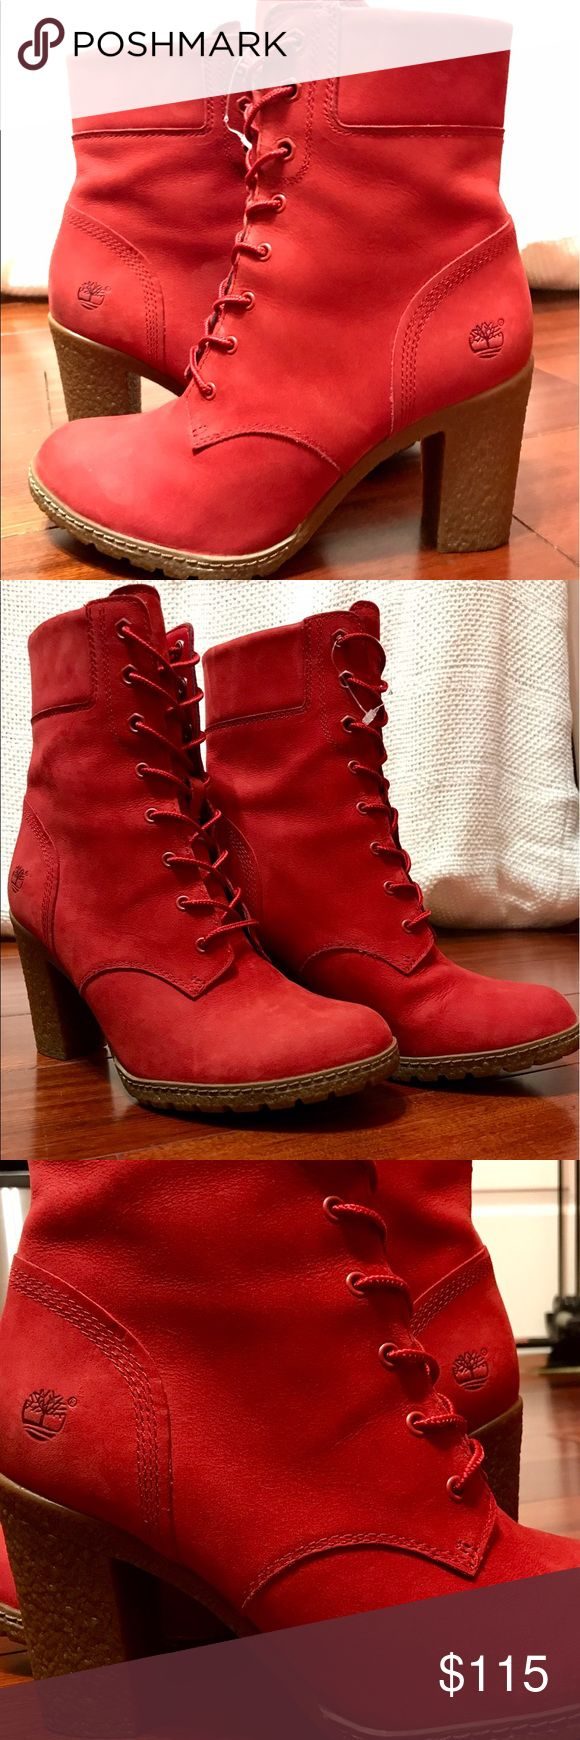 LIMITED RELEASE RUBY RED GLANCY 6-INCH HEELS TIMBERLAND LIMITED RELEASE--Heel height is 3 inches; shaft height is 5.5 inches Imported-- SIZE 8 NEVER WORN! *PRICE NEGOTIABLE* Timberland Shoes Heeled Boots